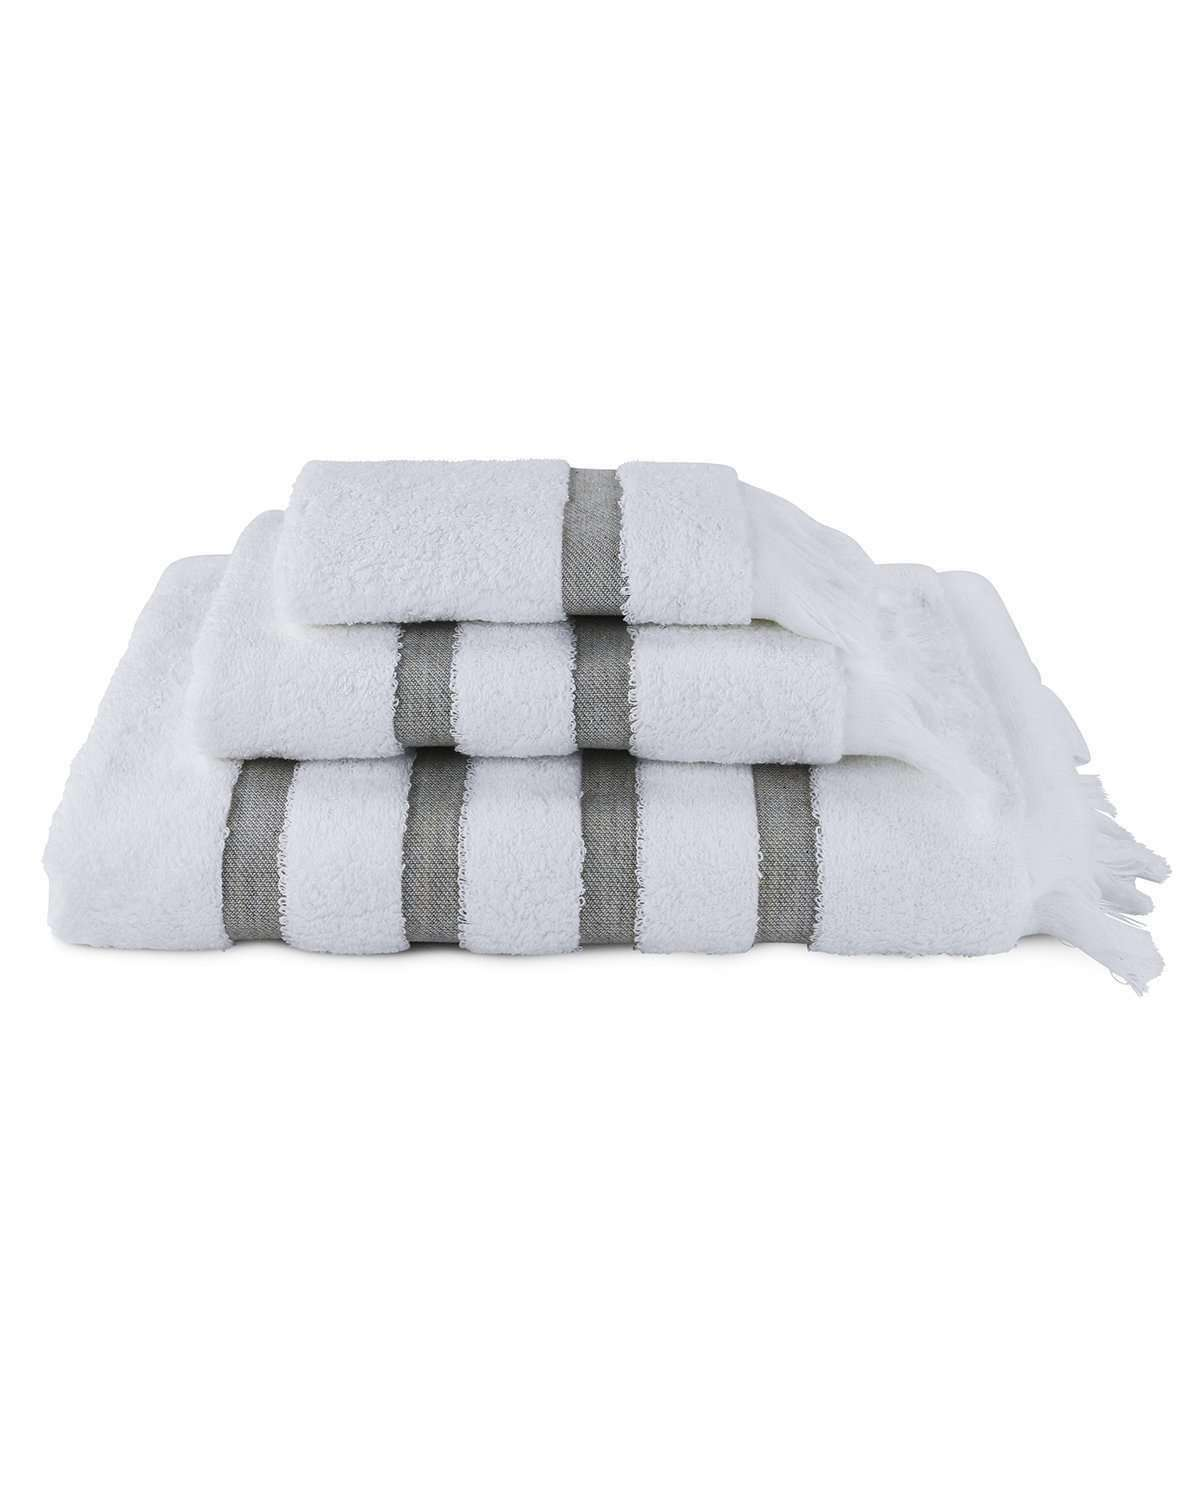 Bari 100% Combed Ring Spun Cotton Towels